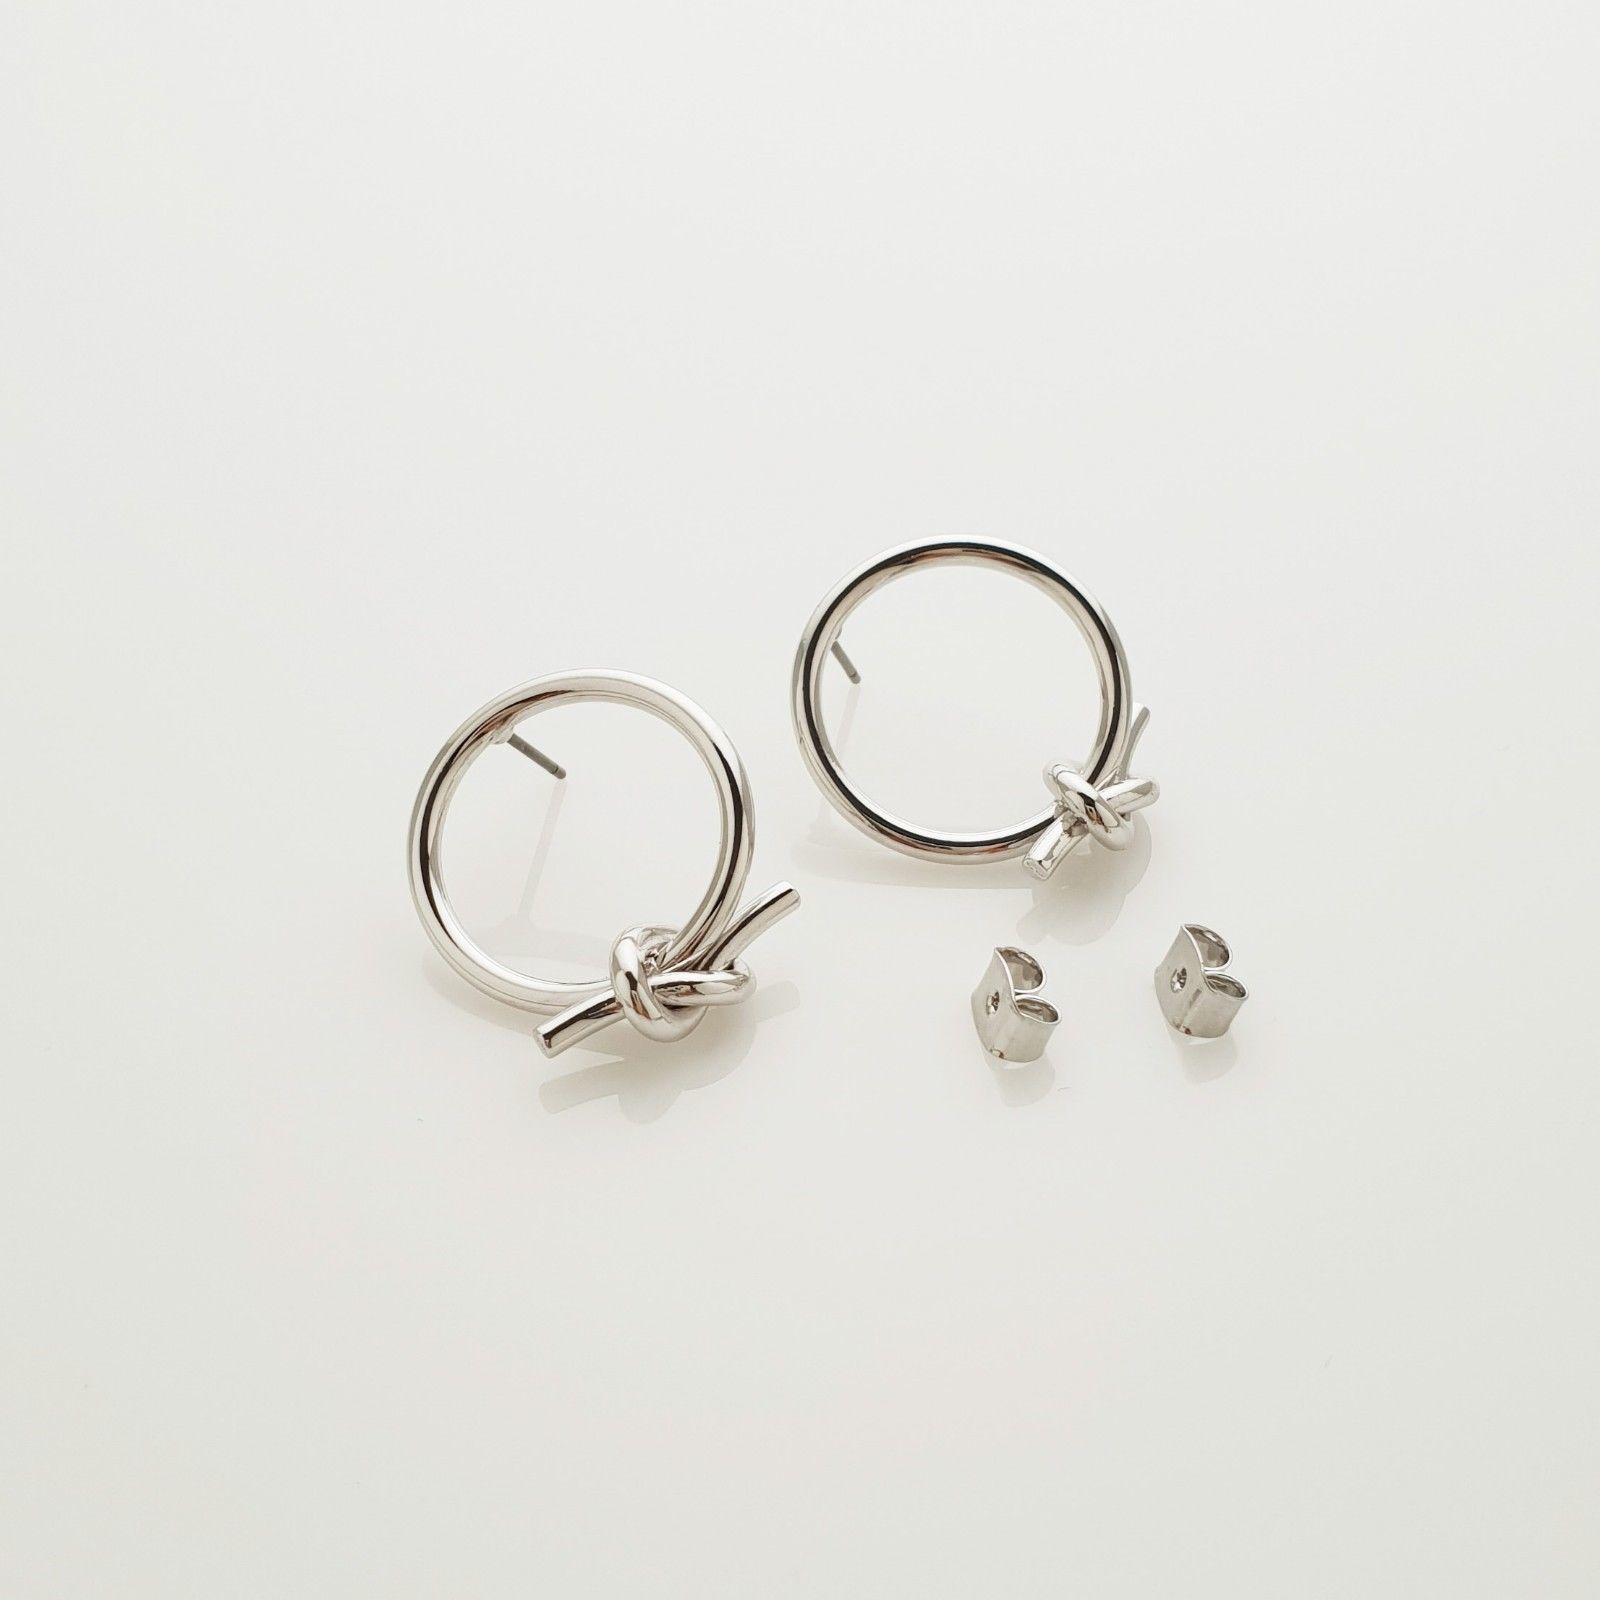 Open Circle Knot Stud Earrings Silver Tone  Brass Titanium Ear Gift For Women image 5